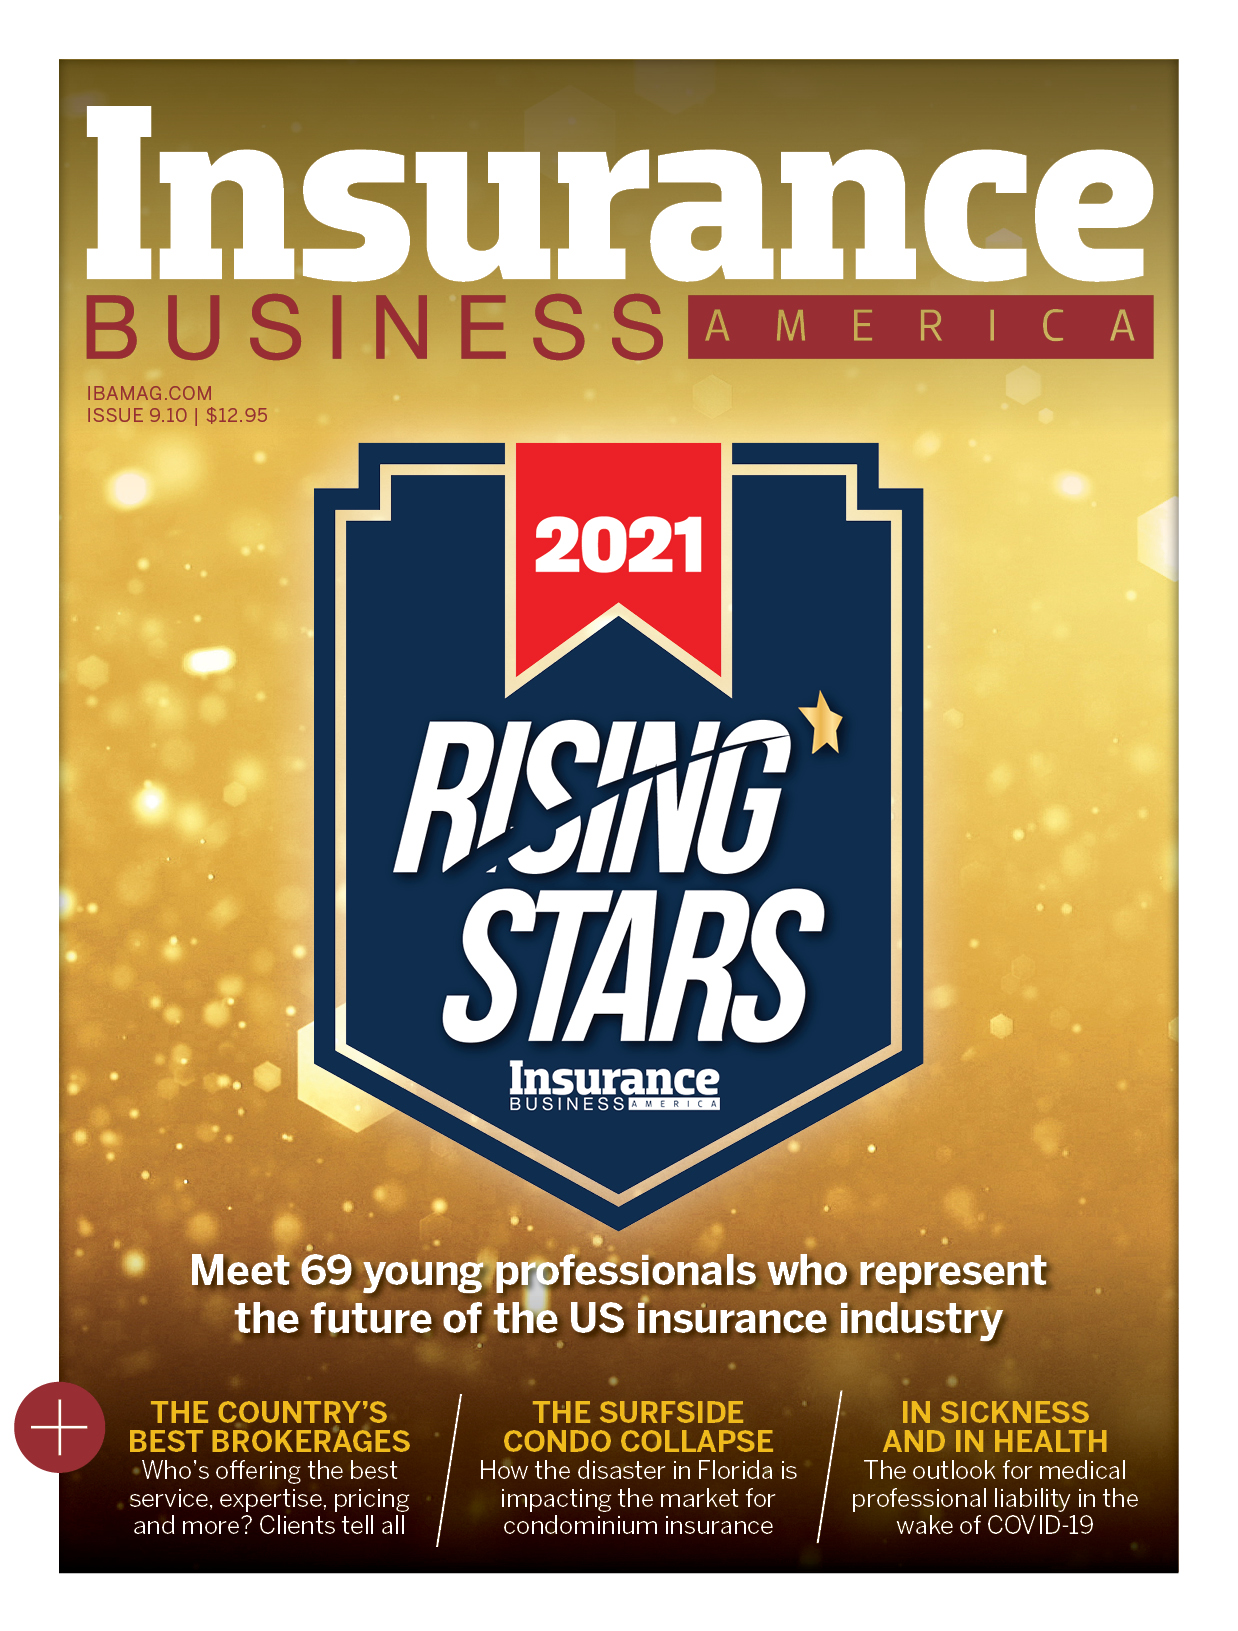 Insurance Business America issue 9.10